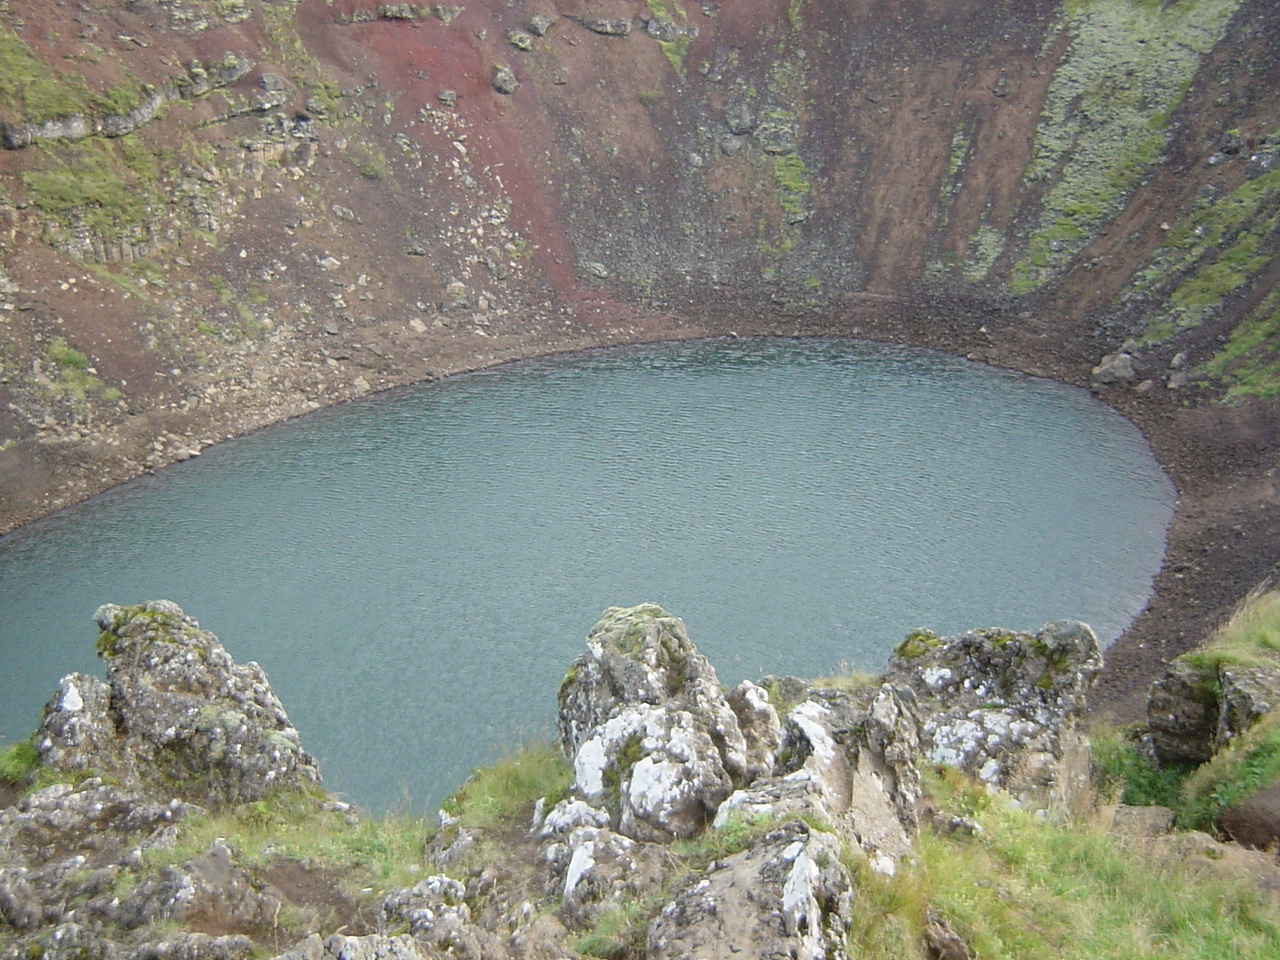 A vulcano crater filled with rain water...